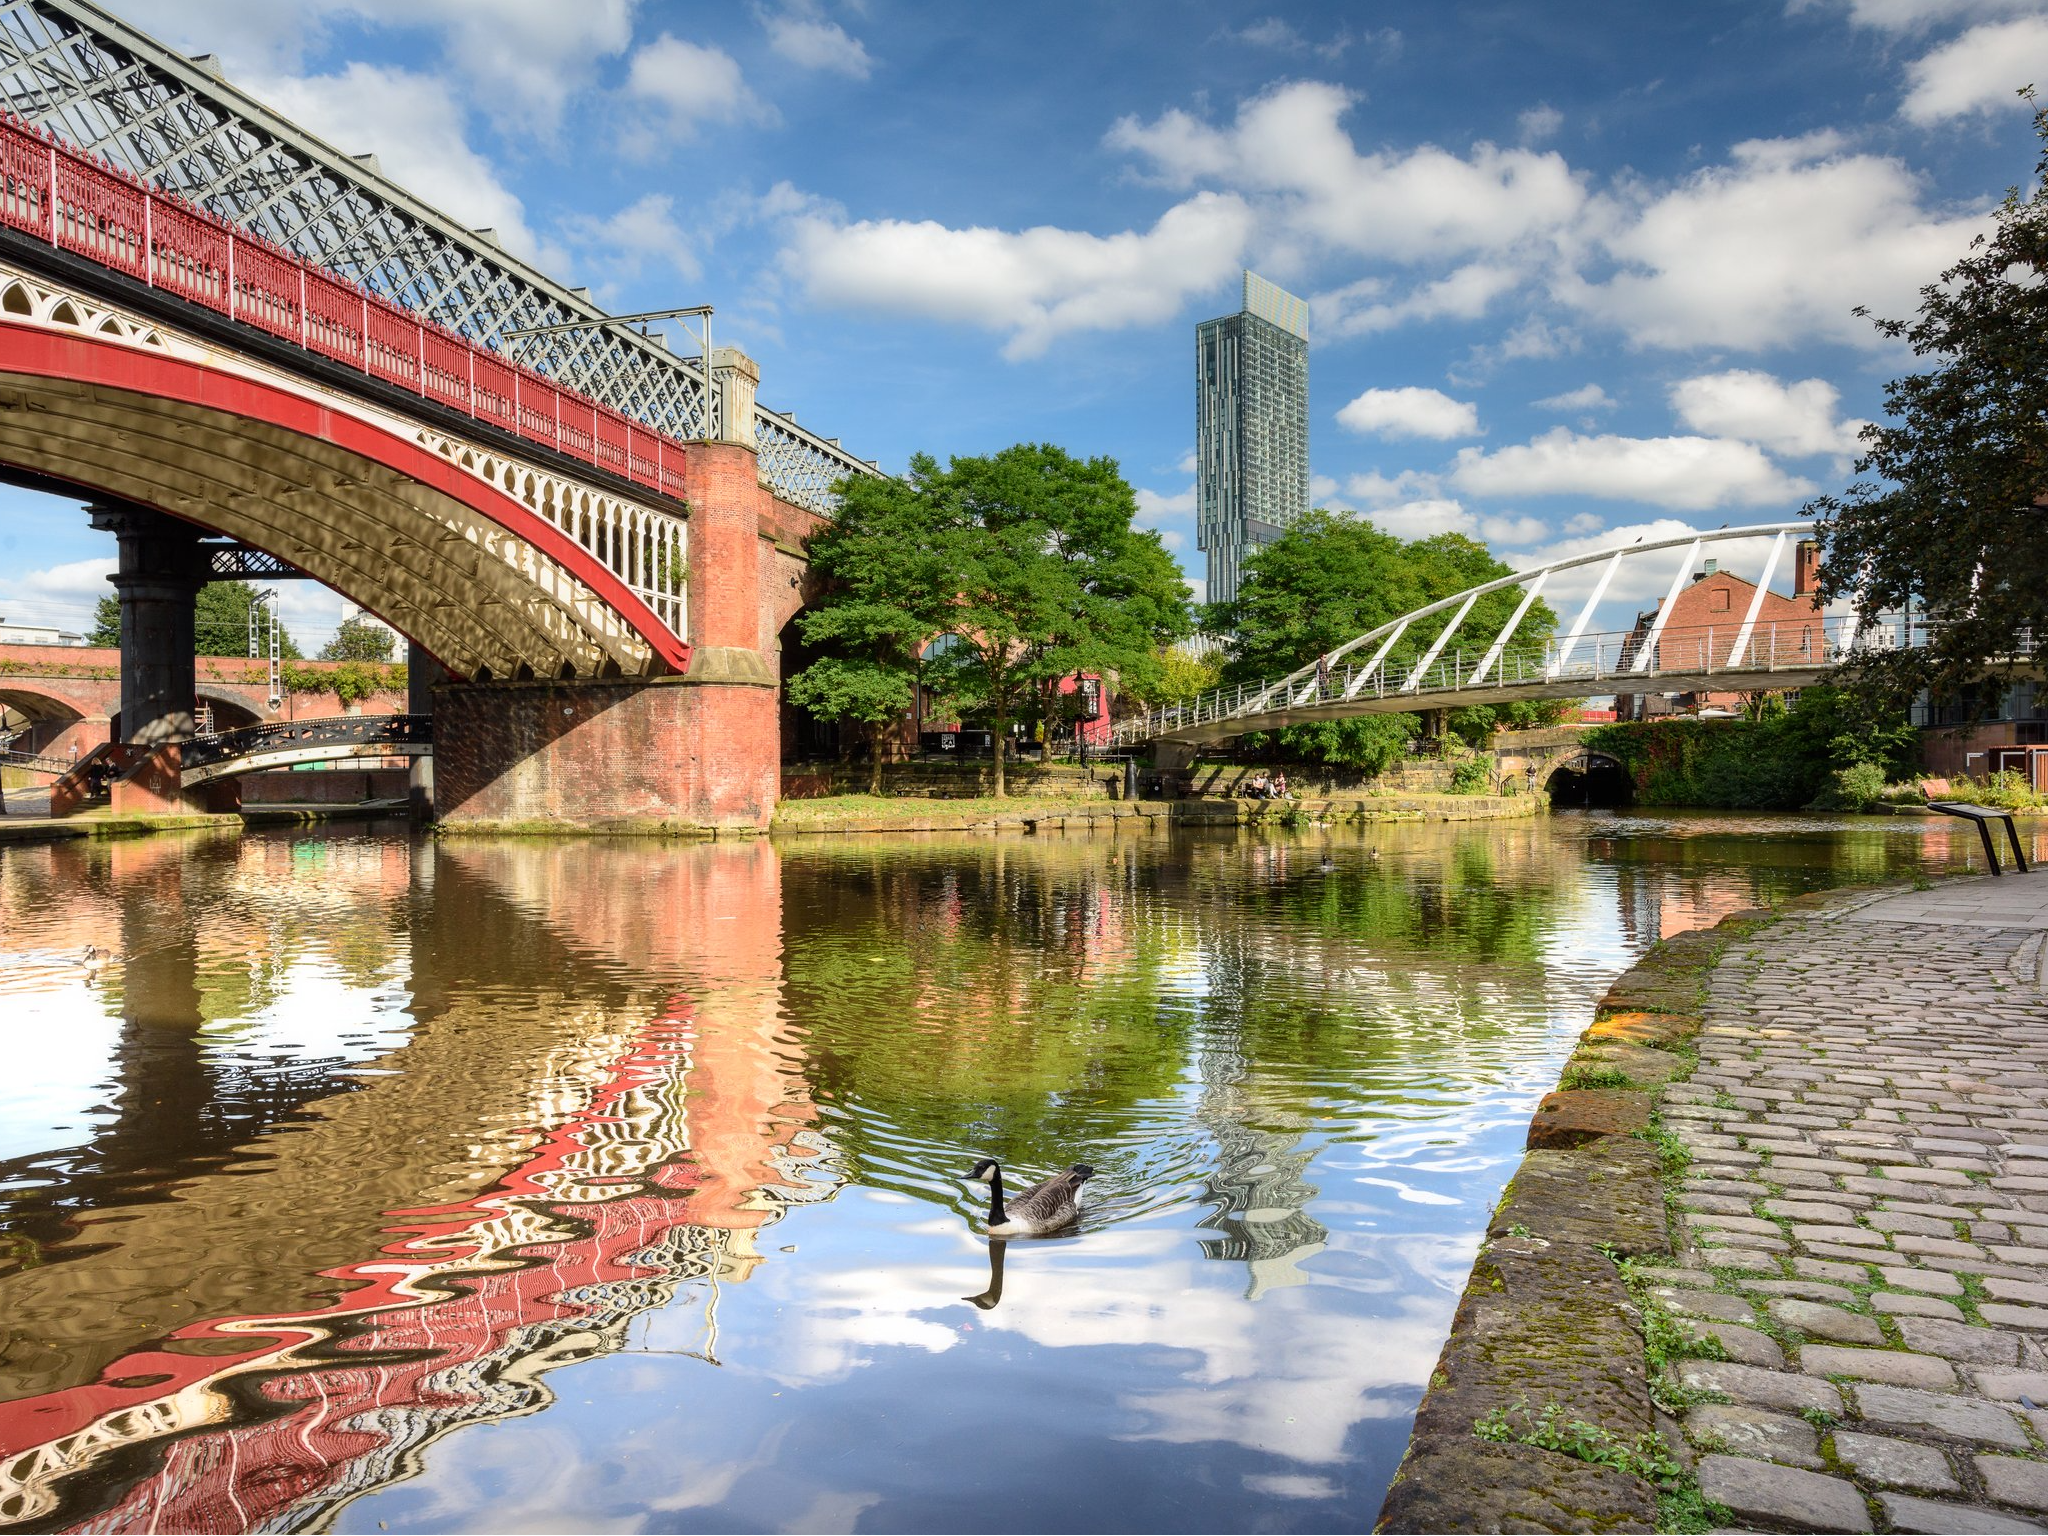 Discover surprising things about Manchester with a summer of new tours